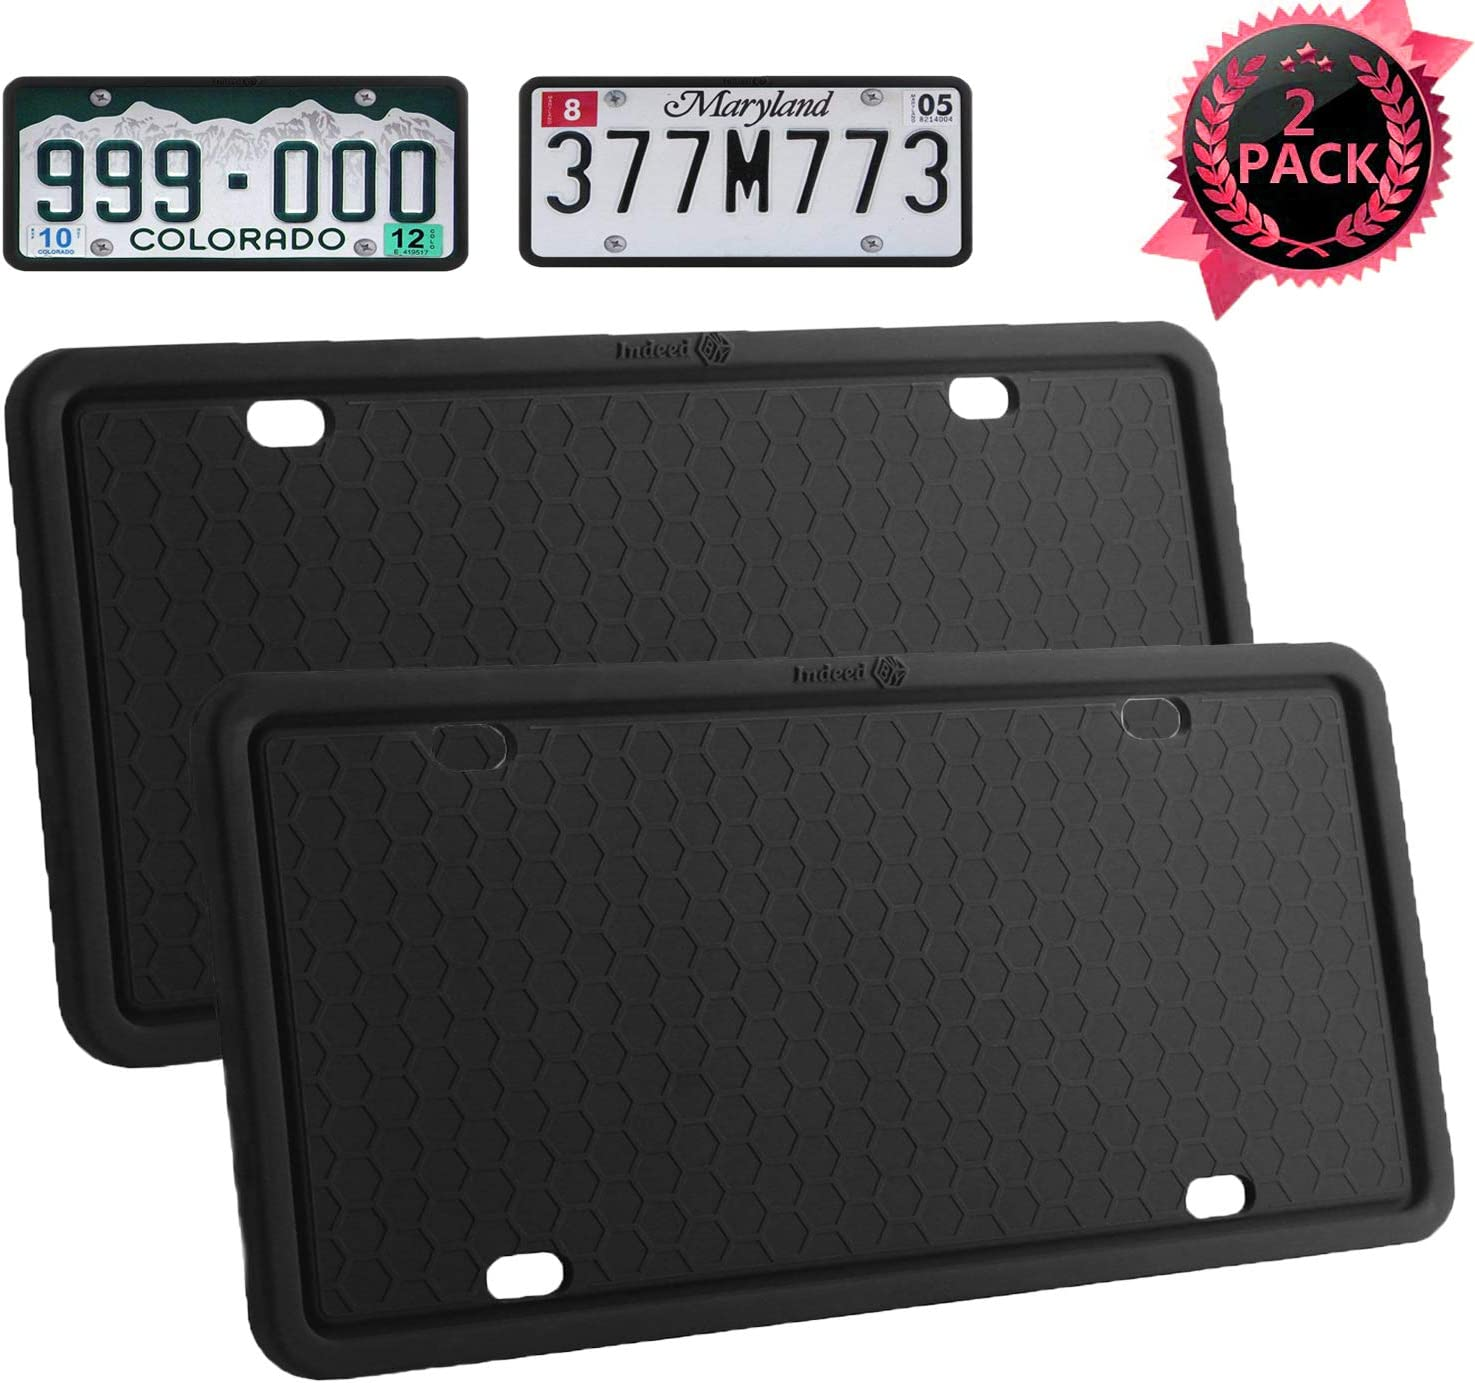 Weather-Proof.Shockproof for Automotive License Plate Frame Black-1 pack License Plate Frames-Silicone Licenses Plate Covers Rust-Proof Rattle-Proof Black